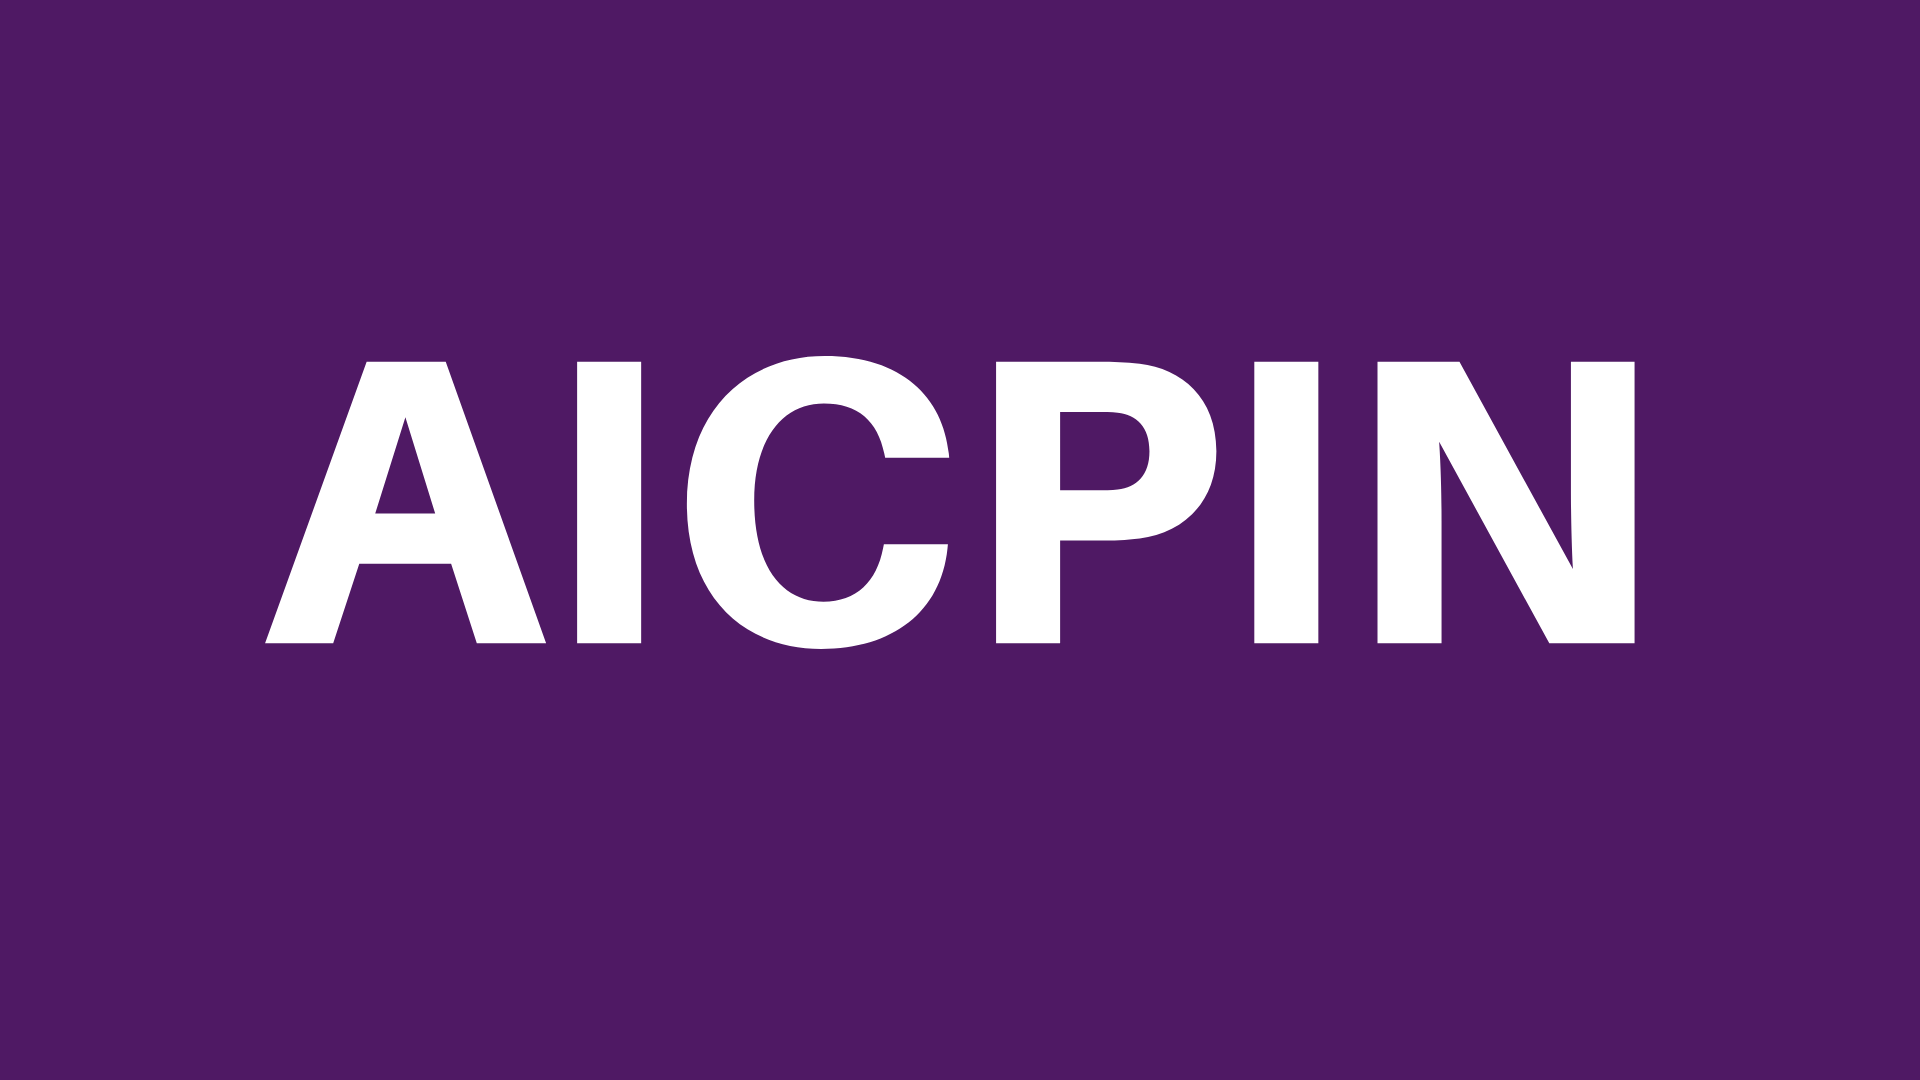 AICPIN for March 2020